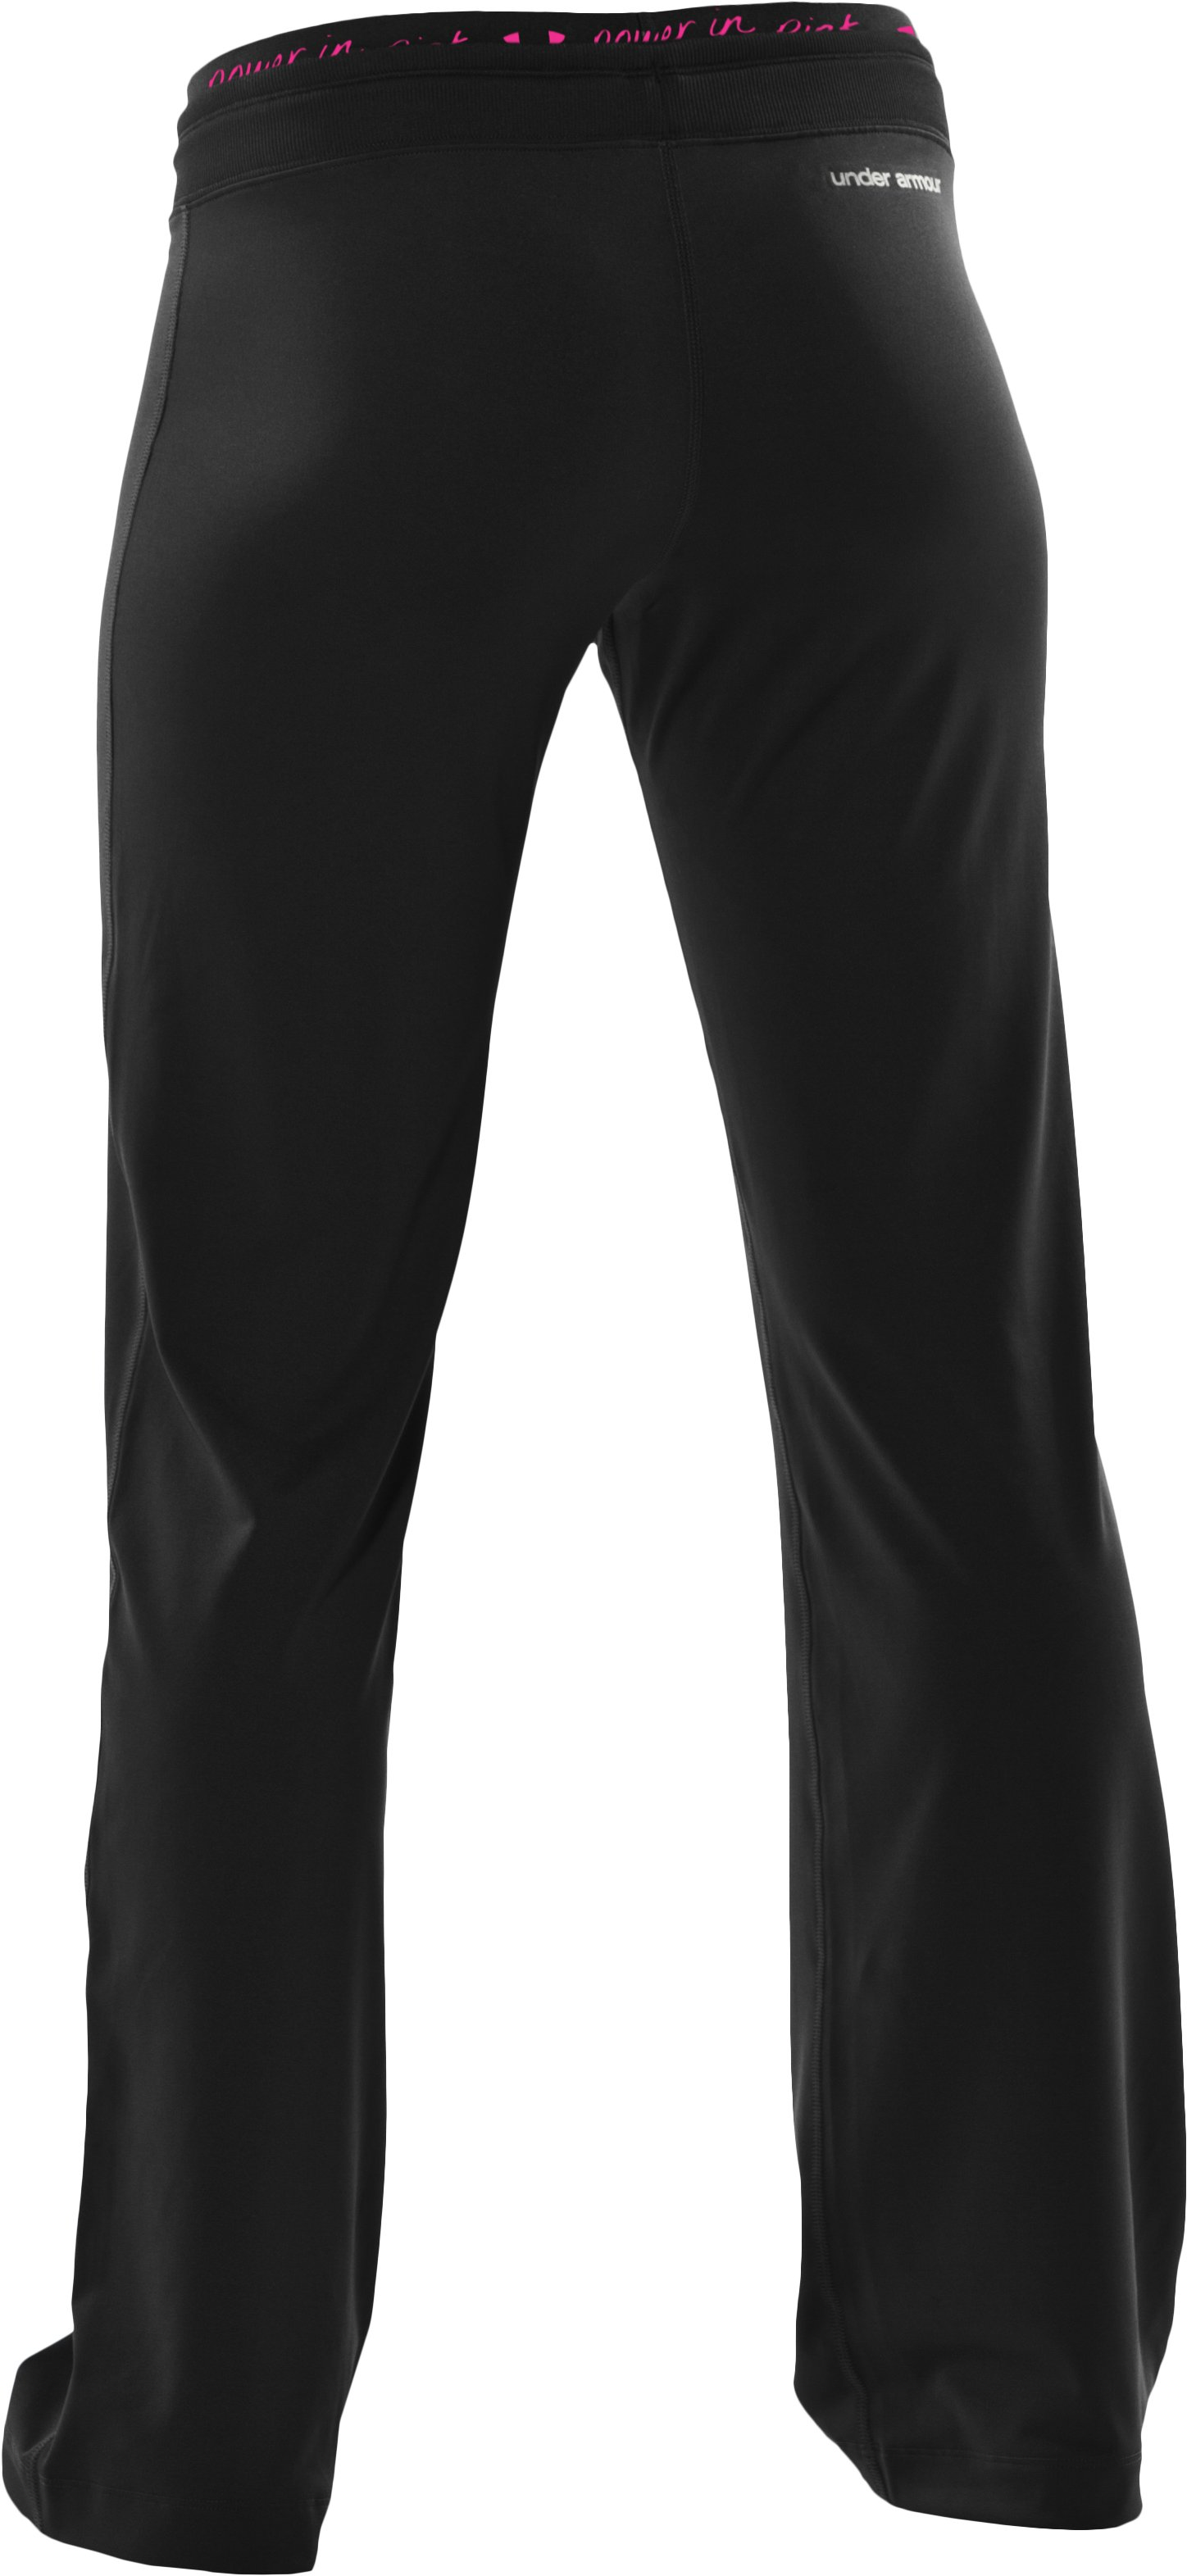 Women's PIP® Form-Fitted Workout Pants, Black